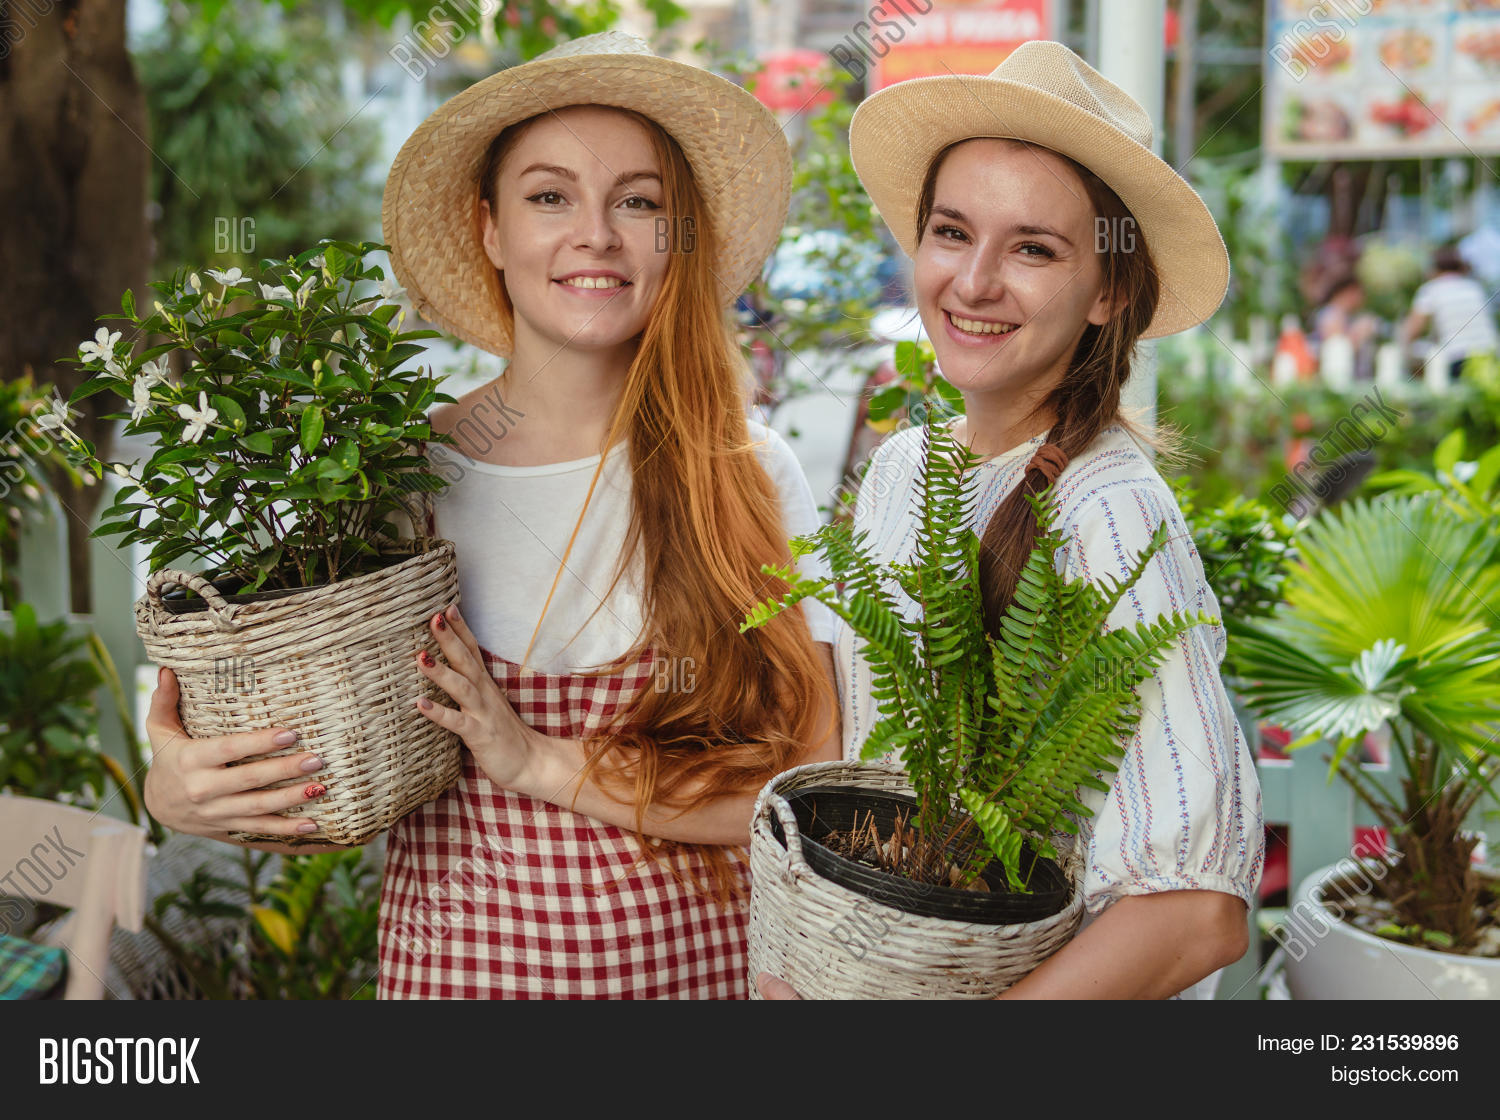 Two Farmer Girls Image & Photo (Free Trial) | Bigstock